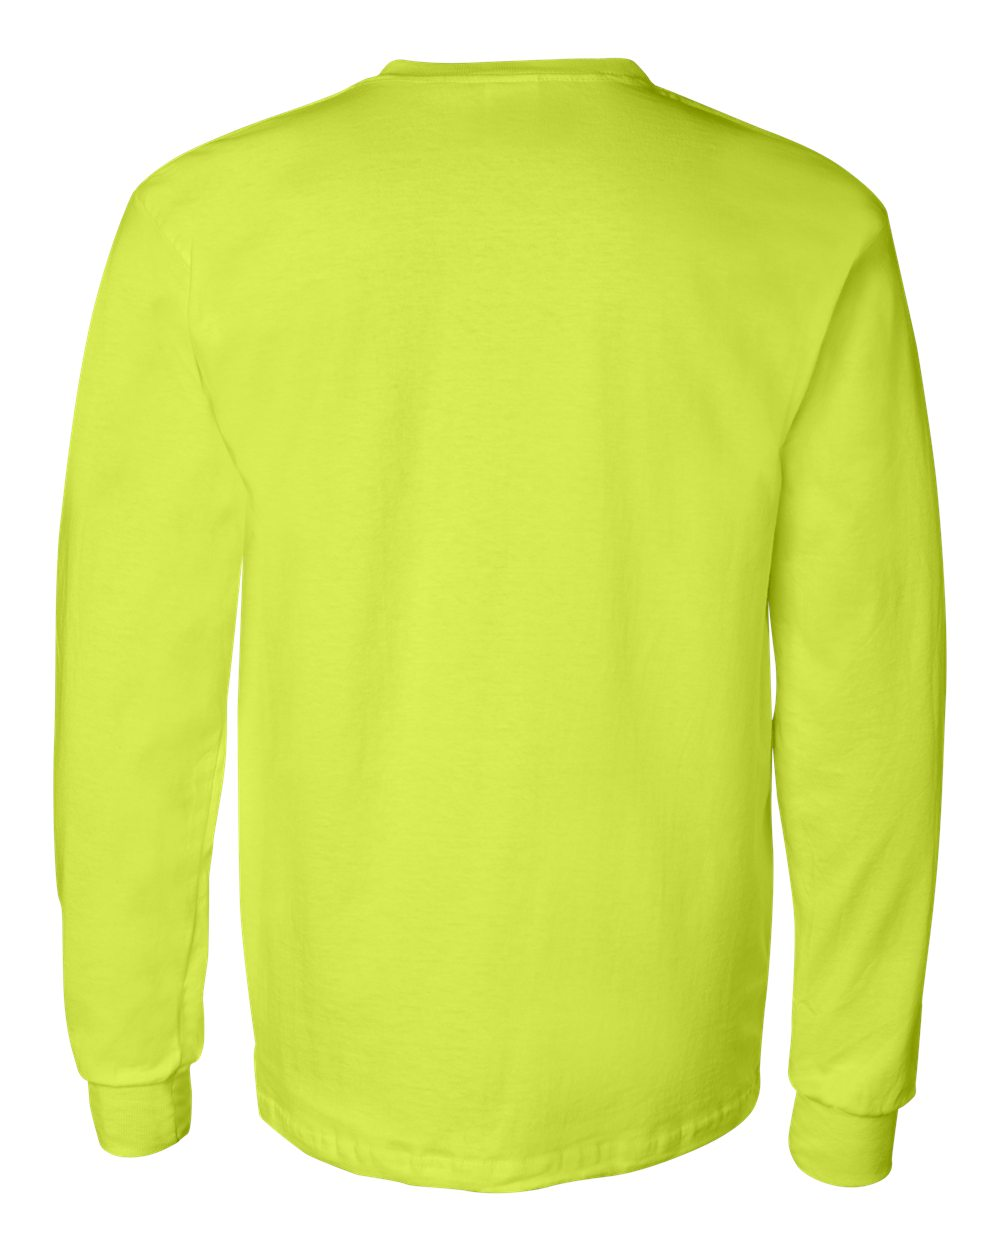 Gildan ultra cotton long sleeve t shirt with a pocket 2410 ebay - Gildan Men 039 S Ultra Cotton Long Sleeve Download Image Pin Blank White T Shirt With Pocket